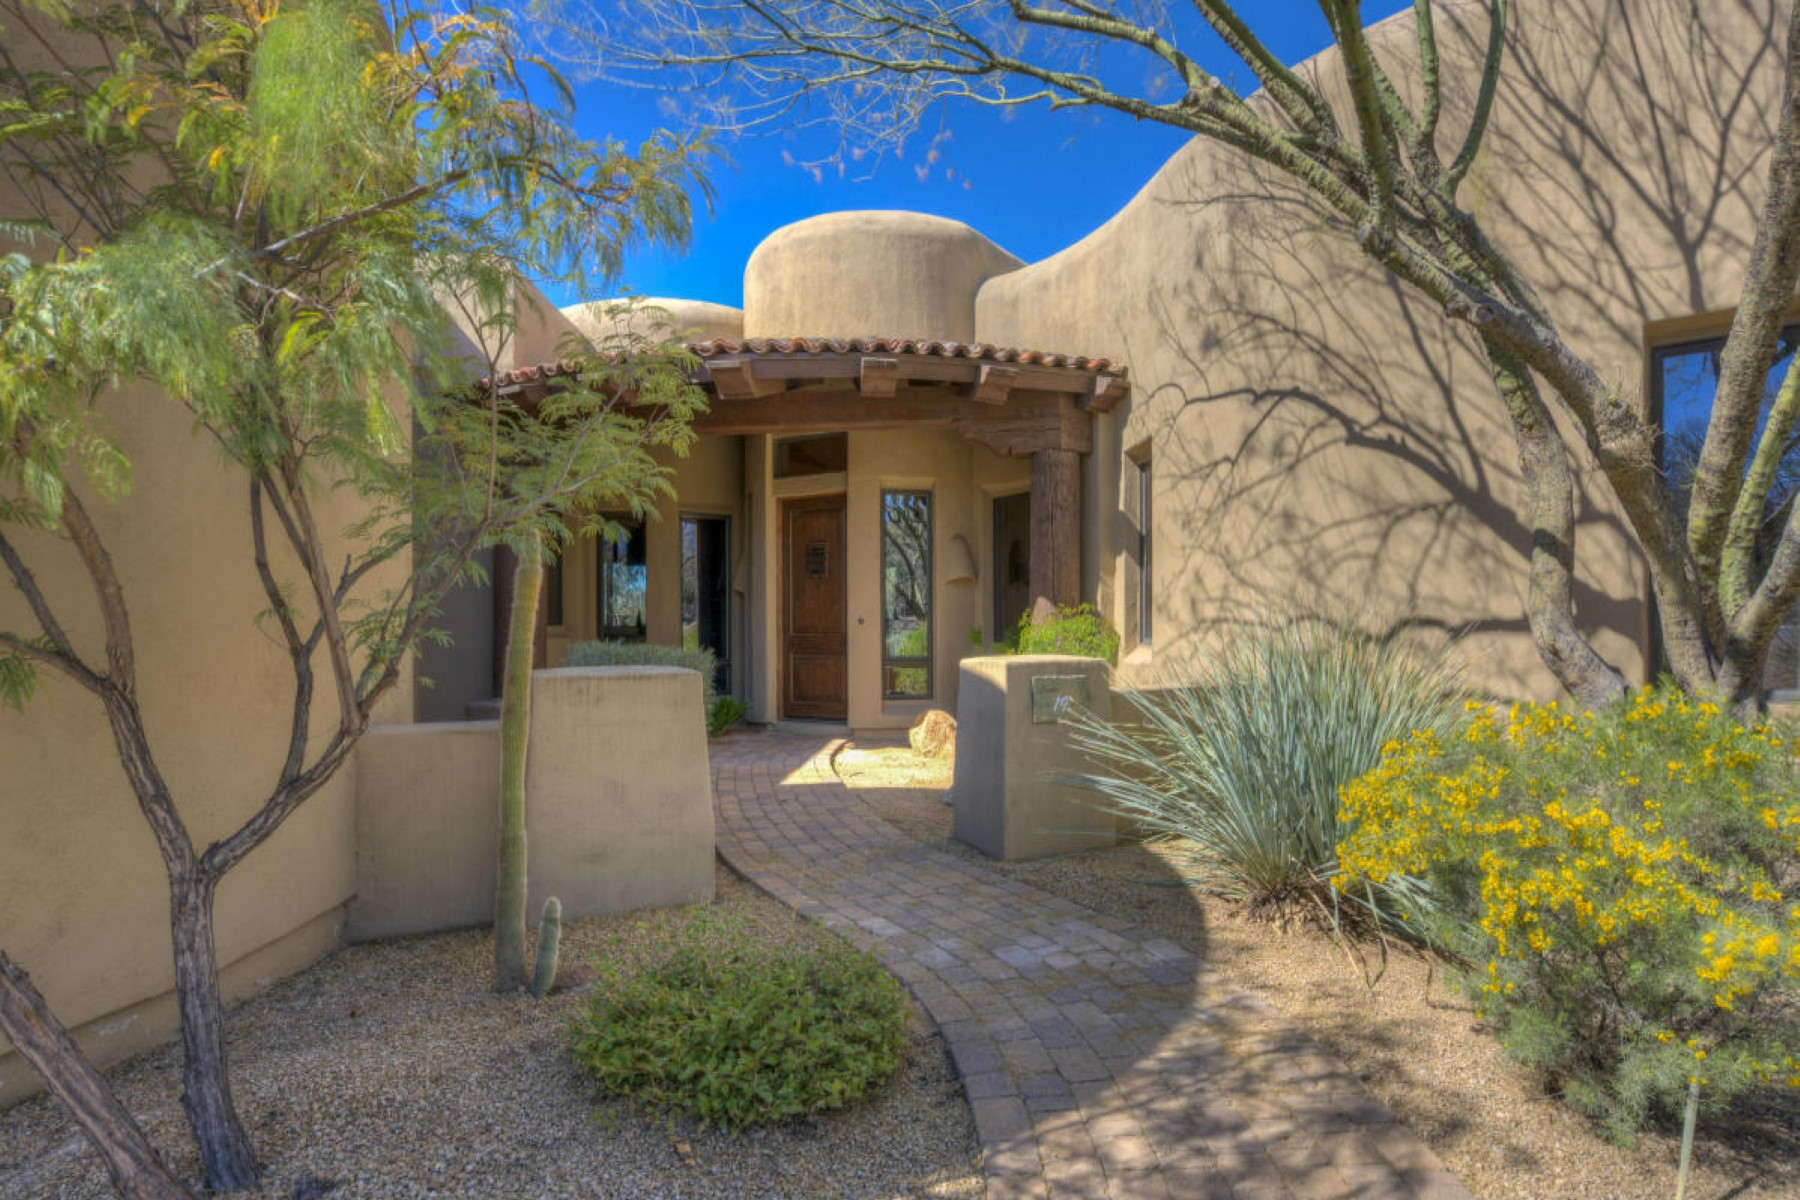 Single Family Home for Sale at Warm and sophisticated home located in the heart of the Boulders community 7373 E Clubhouse Dr #19 Scottsdale, Arizona, 85266 United States